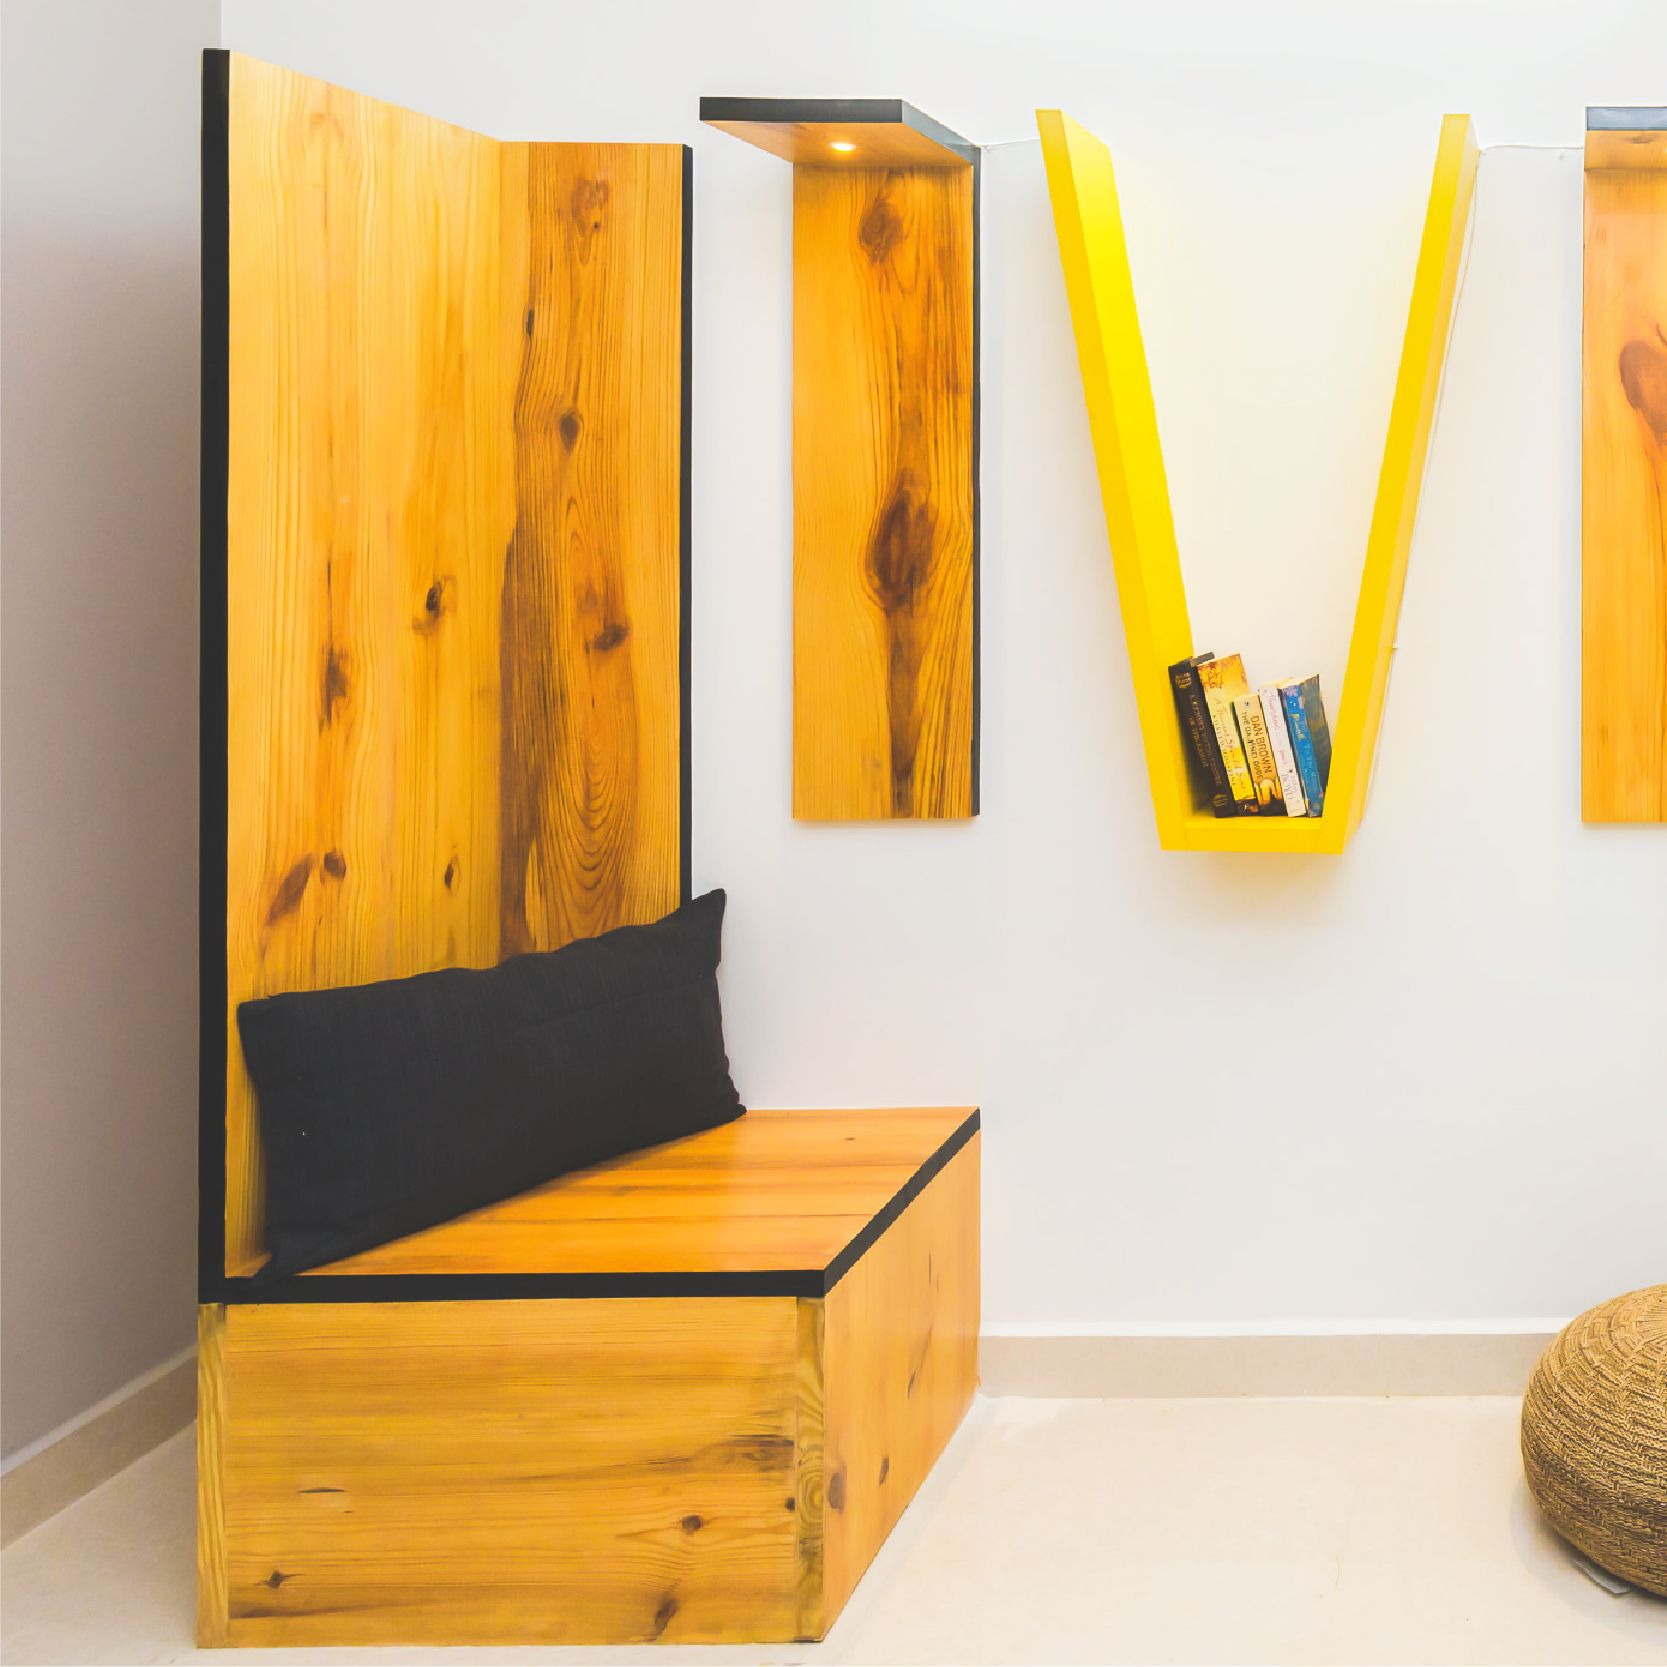 To living the good life! . . . #oyo #oyoliving #oyoxdesign #furniture #spacedesign #spatialdesign #wooden #seating #wall #bookshelf #yellow #bookcorner #recreational #commonarea #bangalore #spaces #interiorstylist #interiordecor #decor #ideas #design #love #lovefordesign #unique #livingthegoodlife